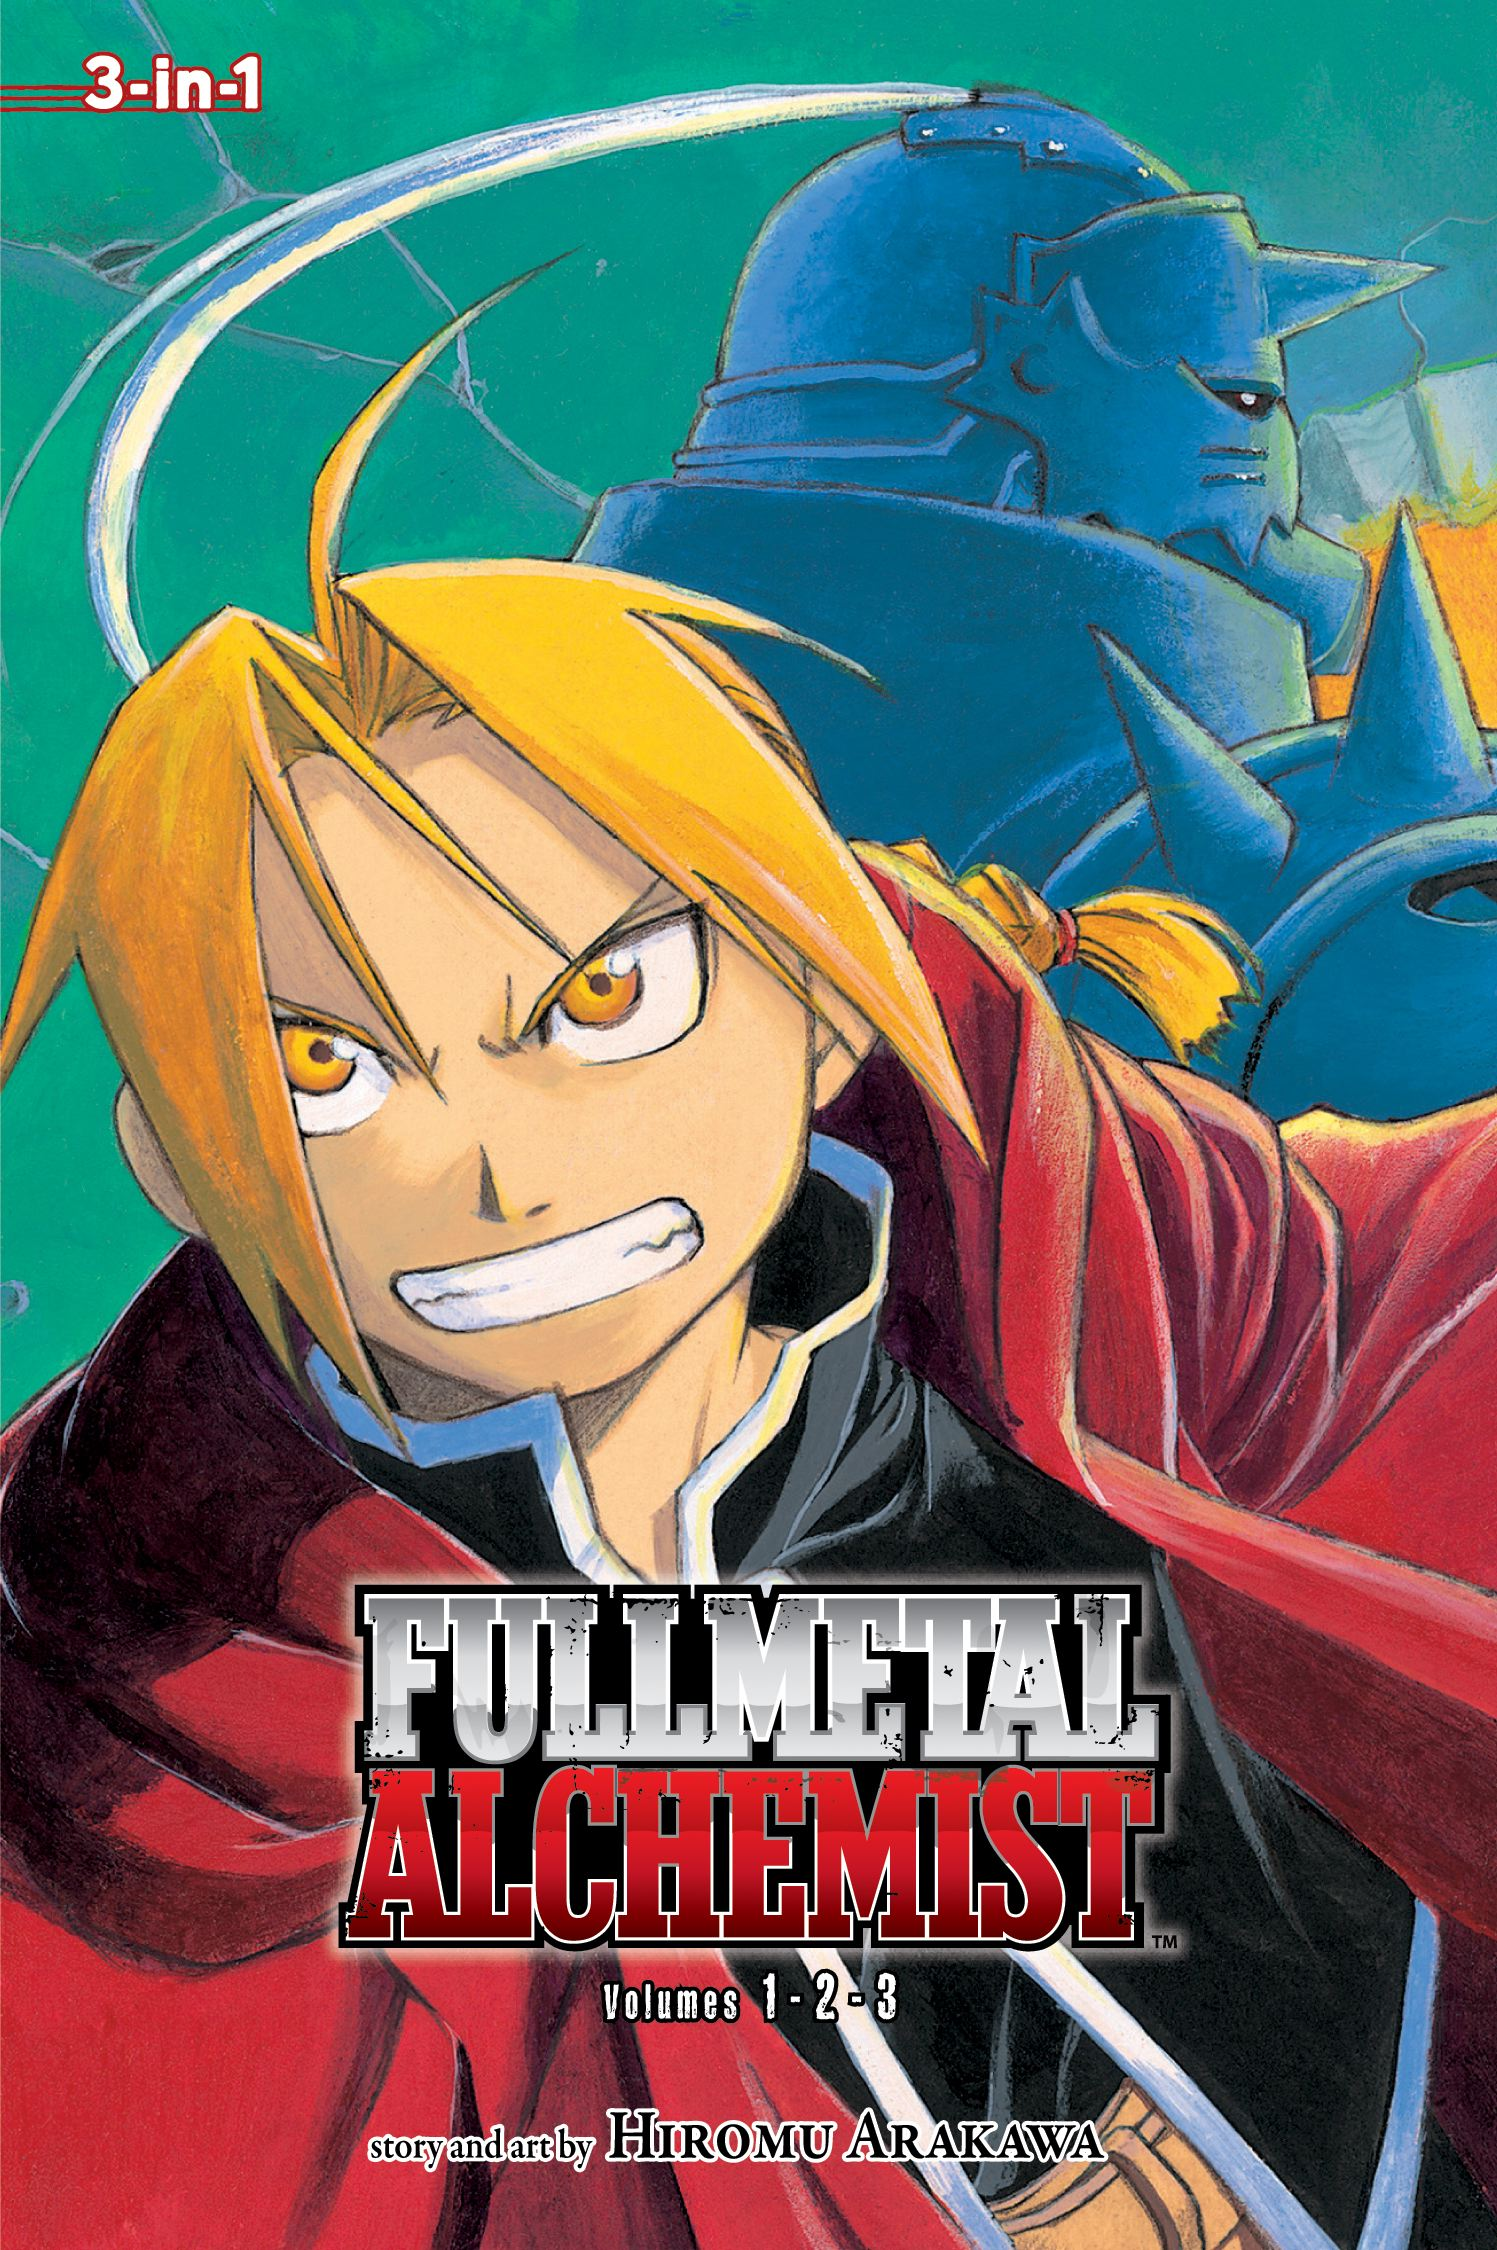 Fullmetal alchemist 3 in 1 edition vol 1 9781421540184 hr